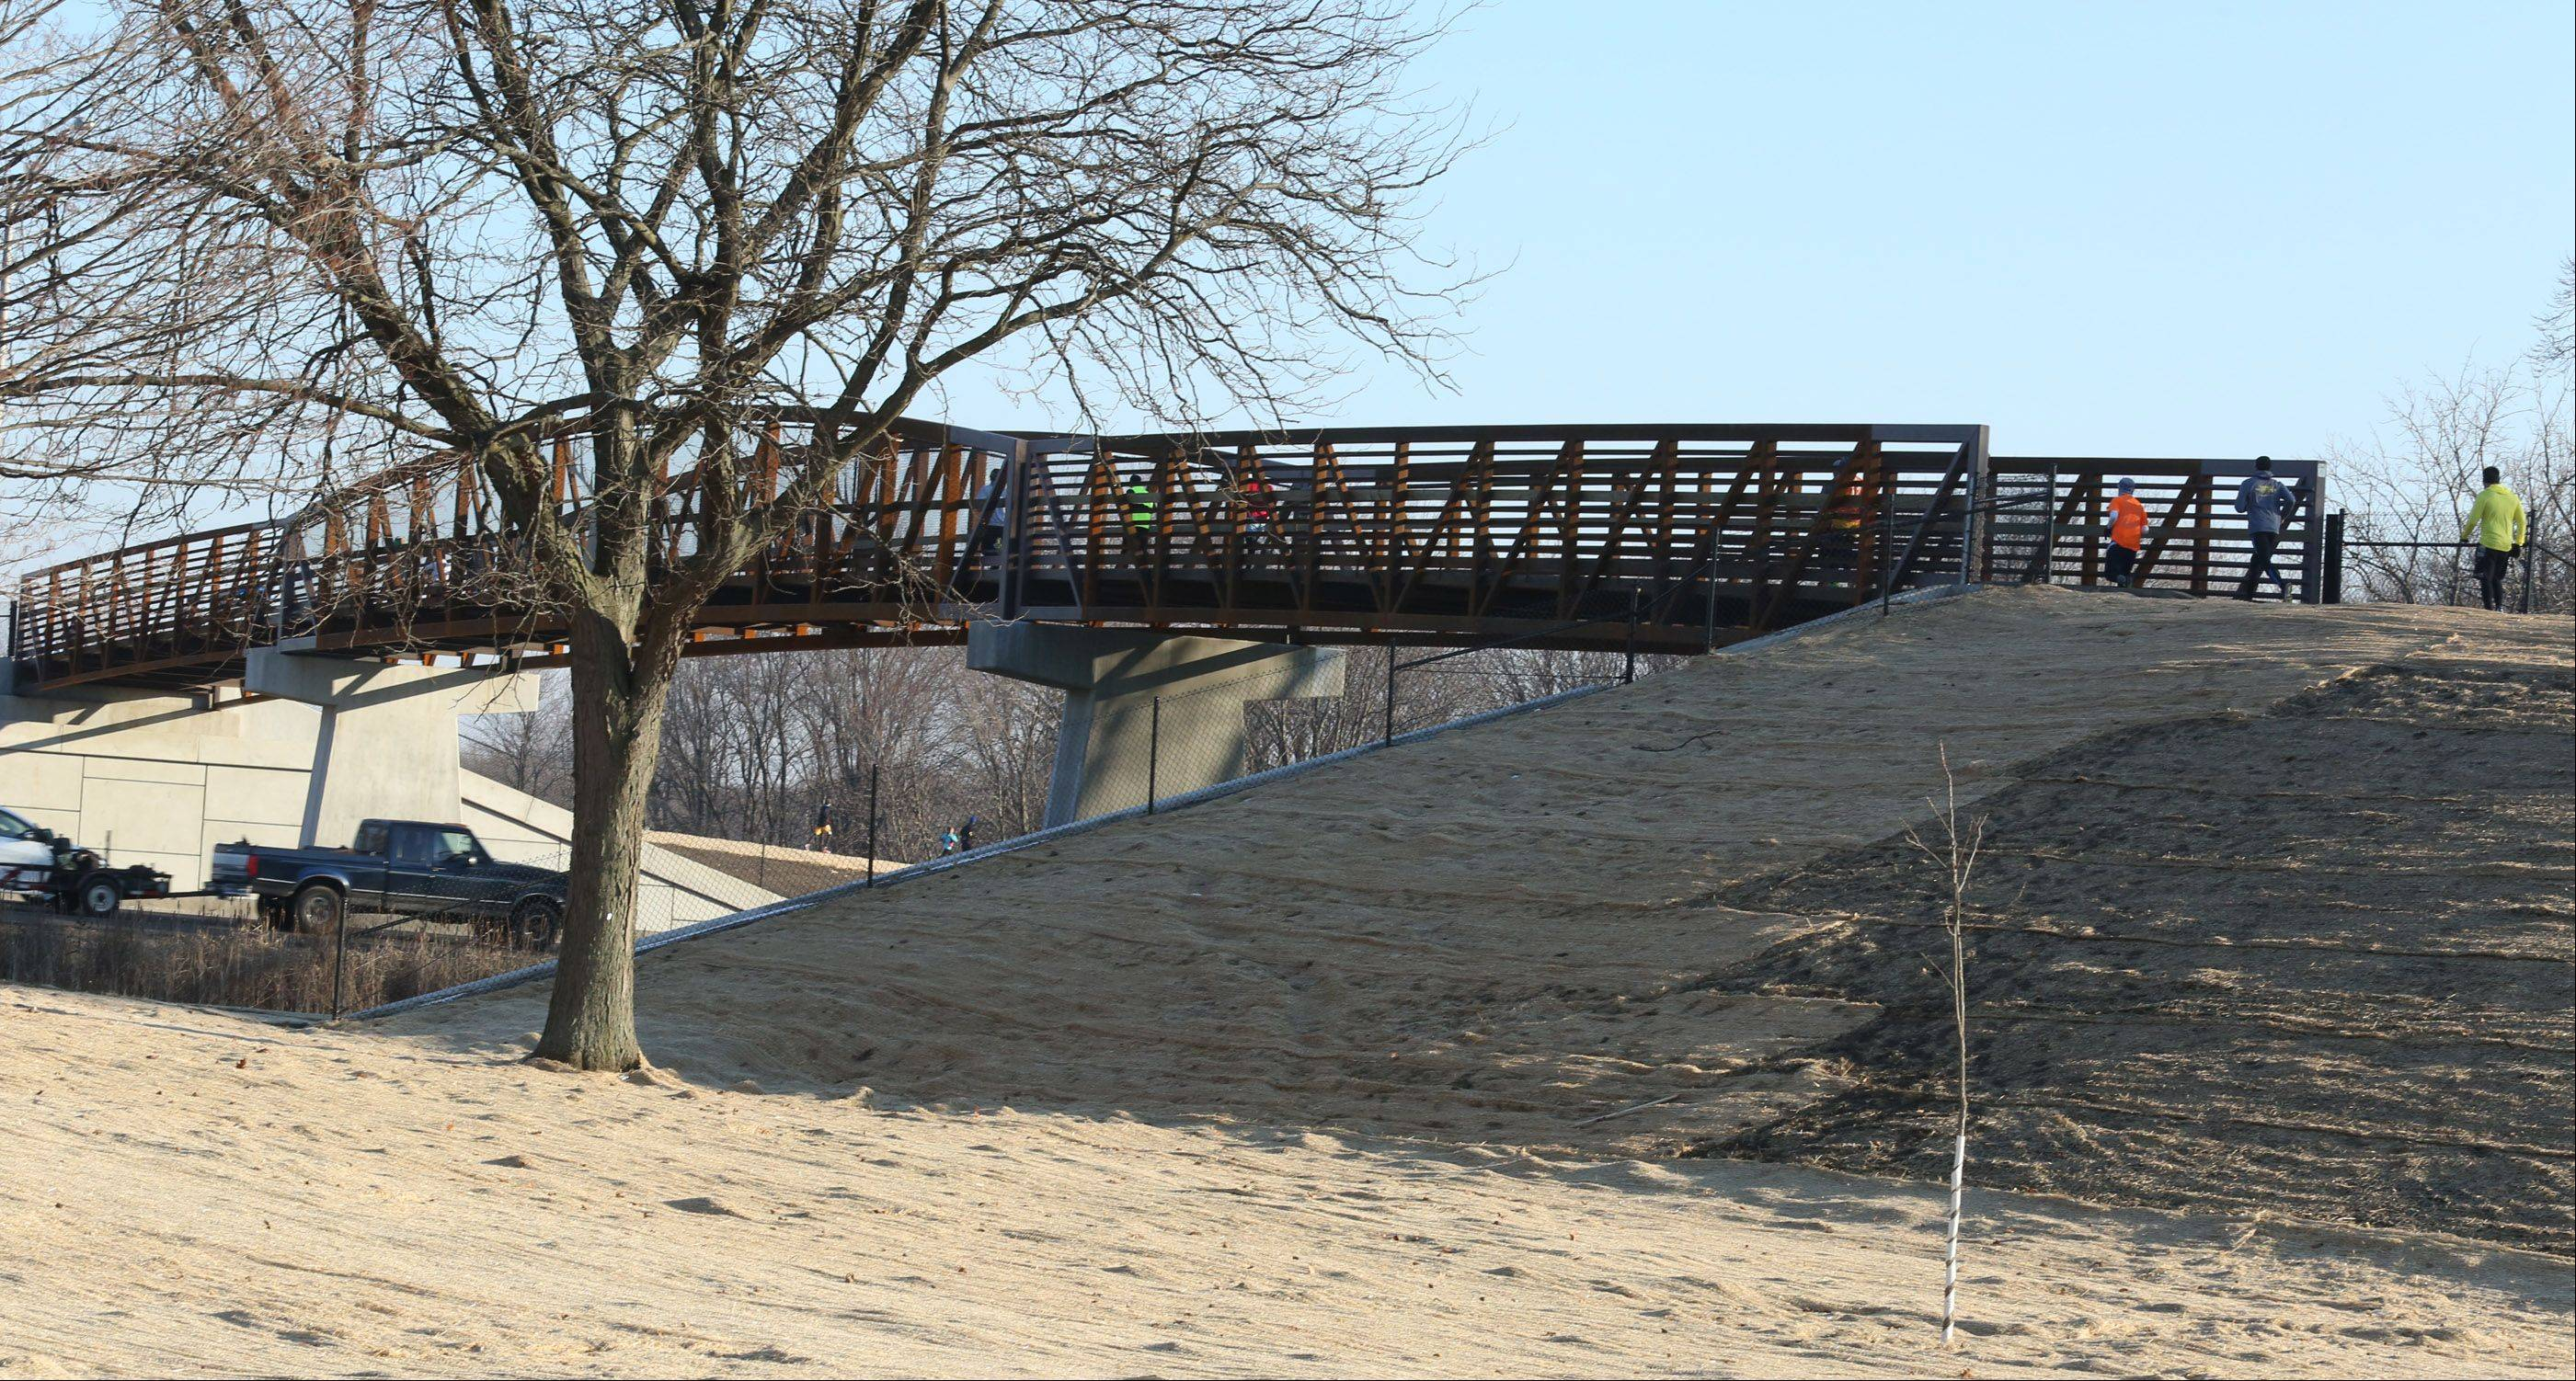 Schaumburg Half Marathon and 5K Turkey Trot is the first event to take advantage of the new bridge over Higgins Road connecting the Busse Woods Trail on its west end near Route 53 in Schaumburg.